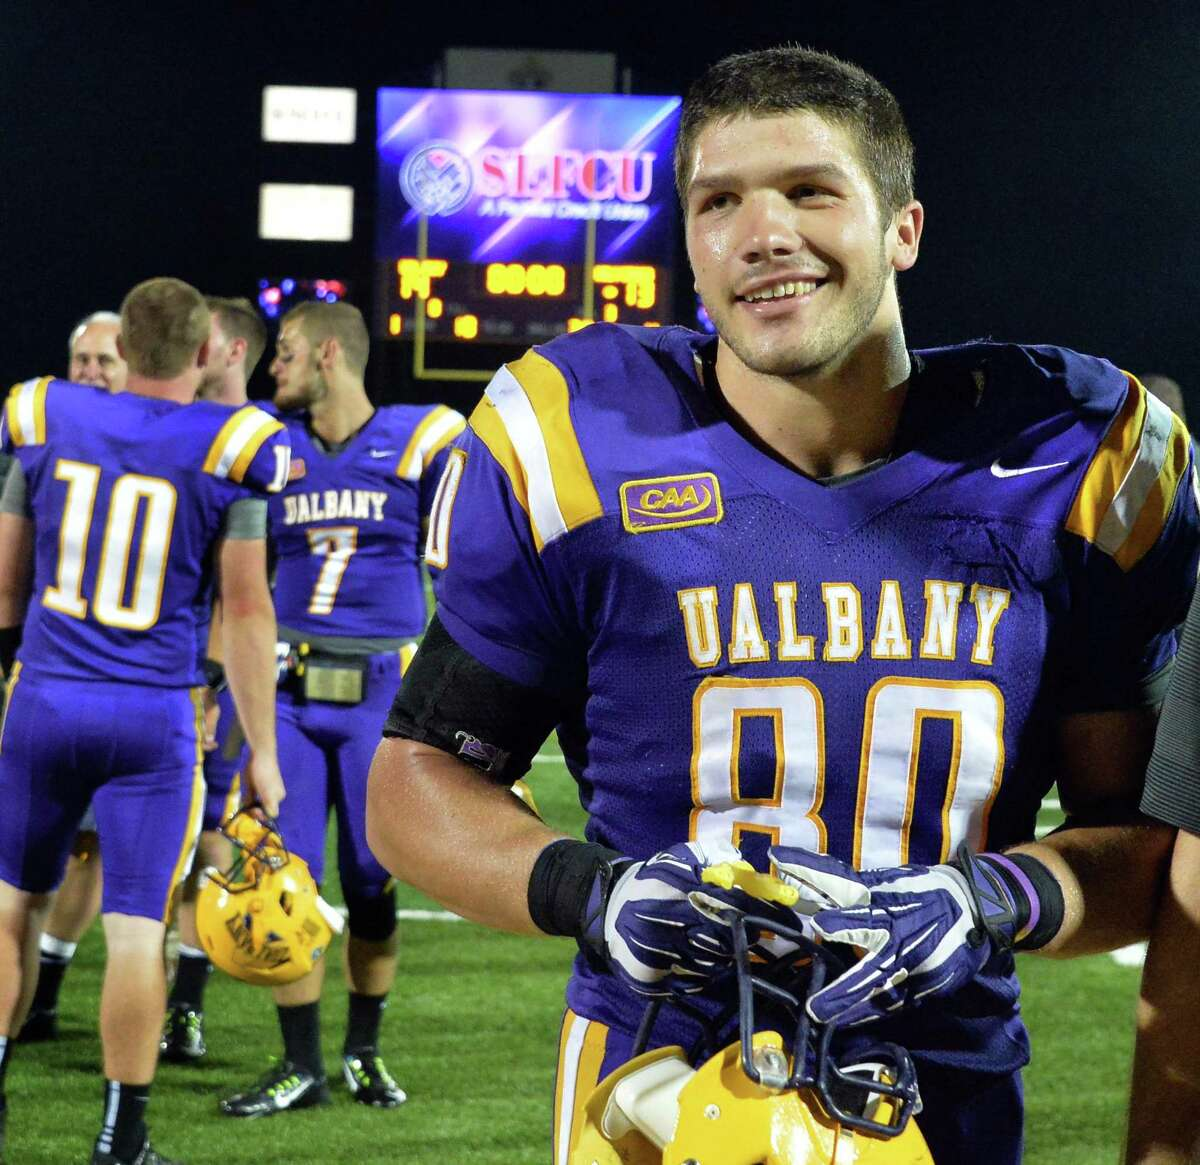 UAlbany's #80 Brian Parker is all smiles as he leaves the field after Saturday's season opener win against Holy Cross at Bob Ford Field in Albany, NY. (John Carl D'Annibale / Times Union)